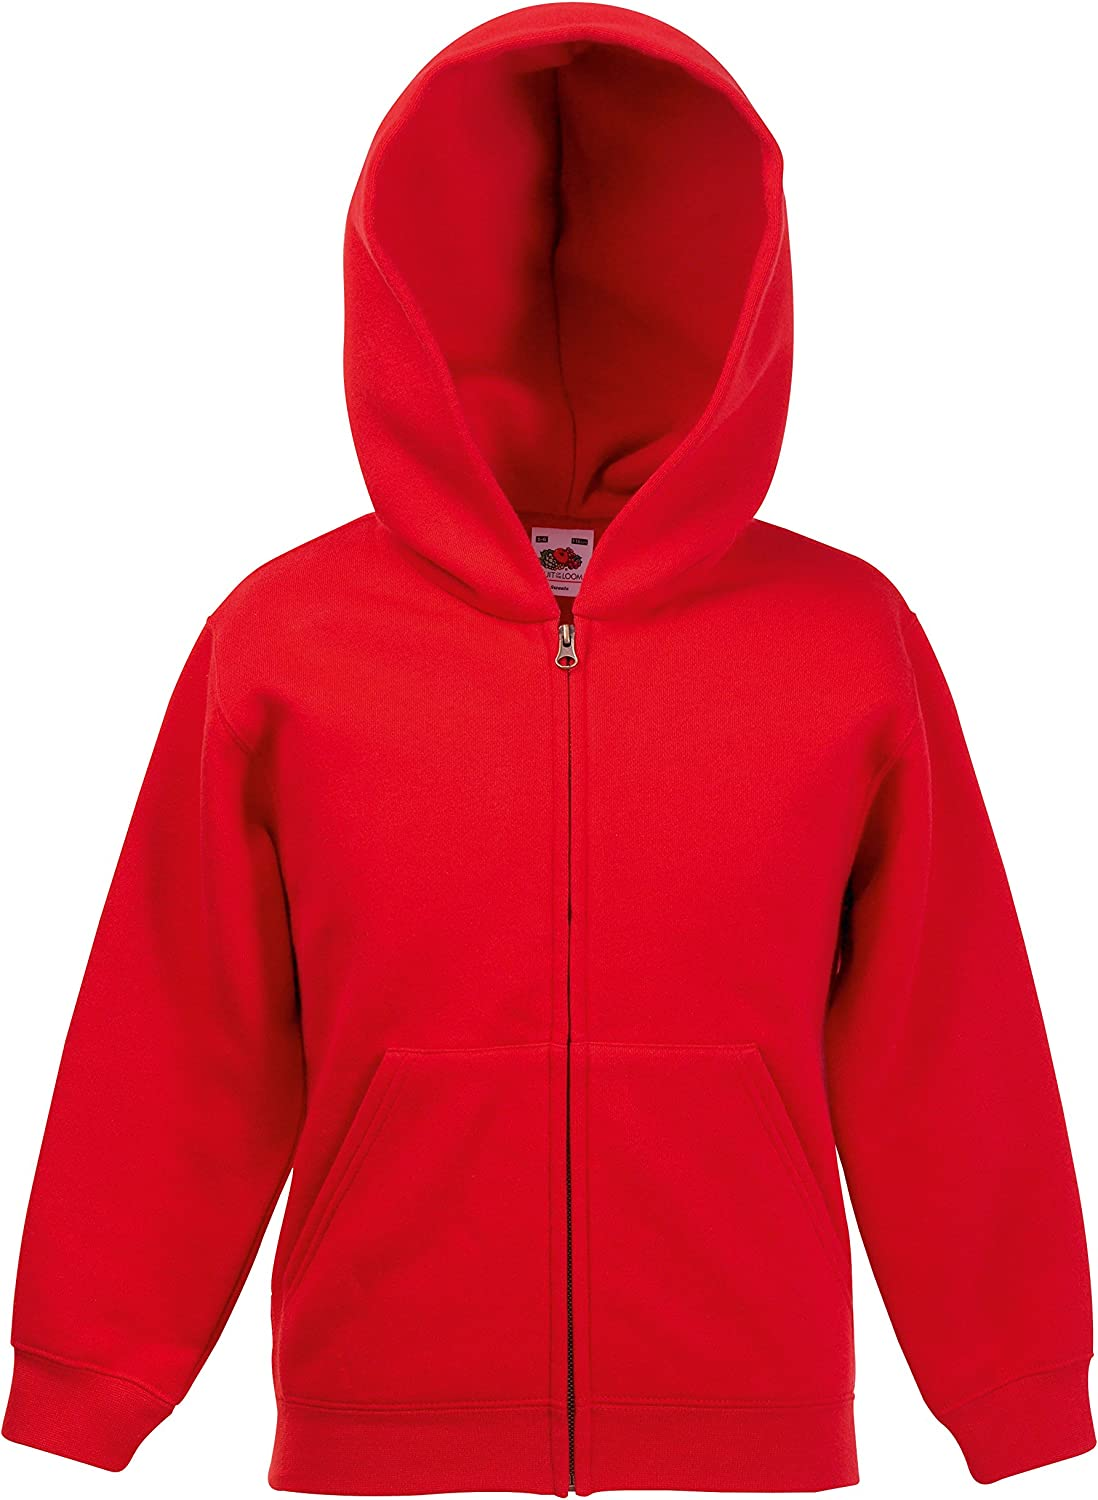 Fruit of the Loom Childrens Classic Zip Hodded Sweatshirt Red Age 9-11